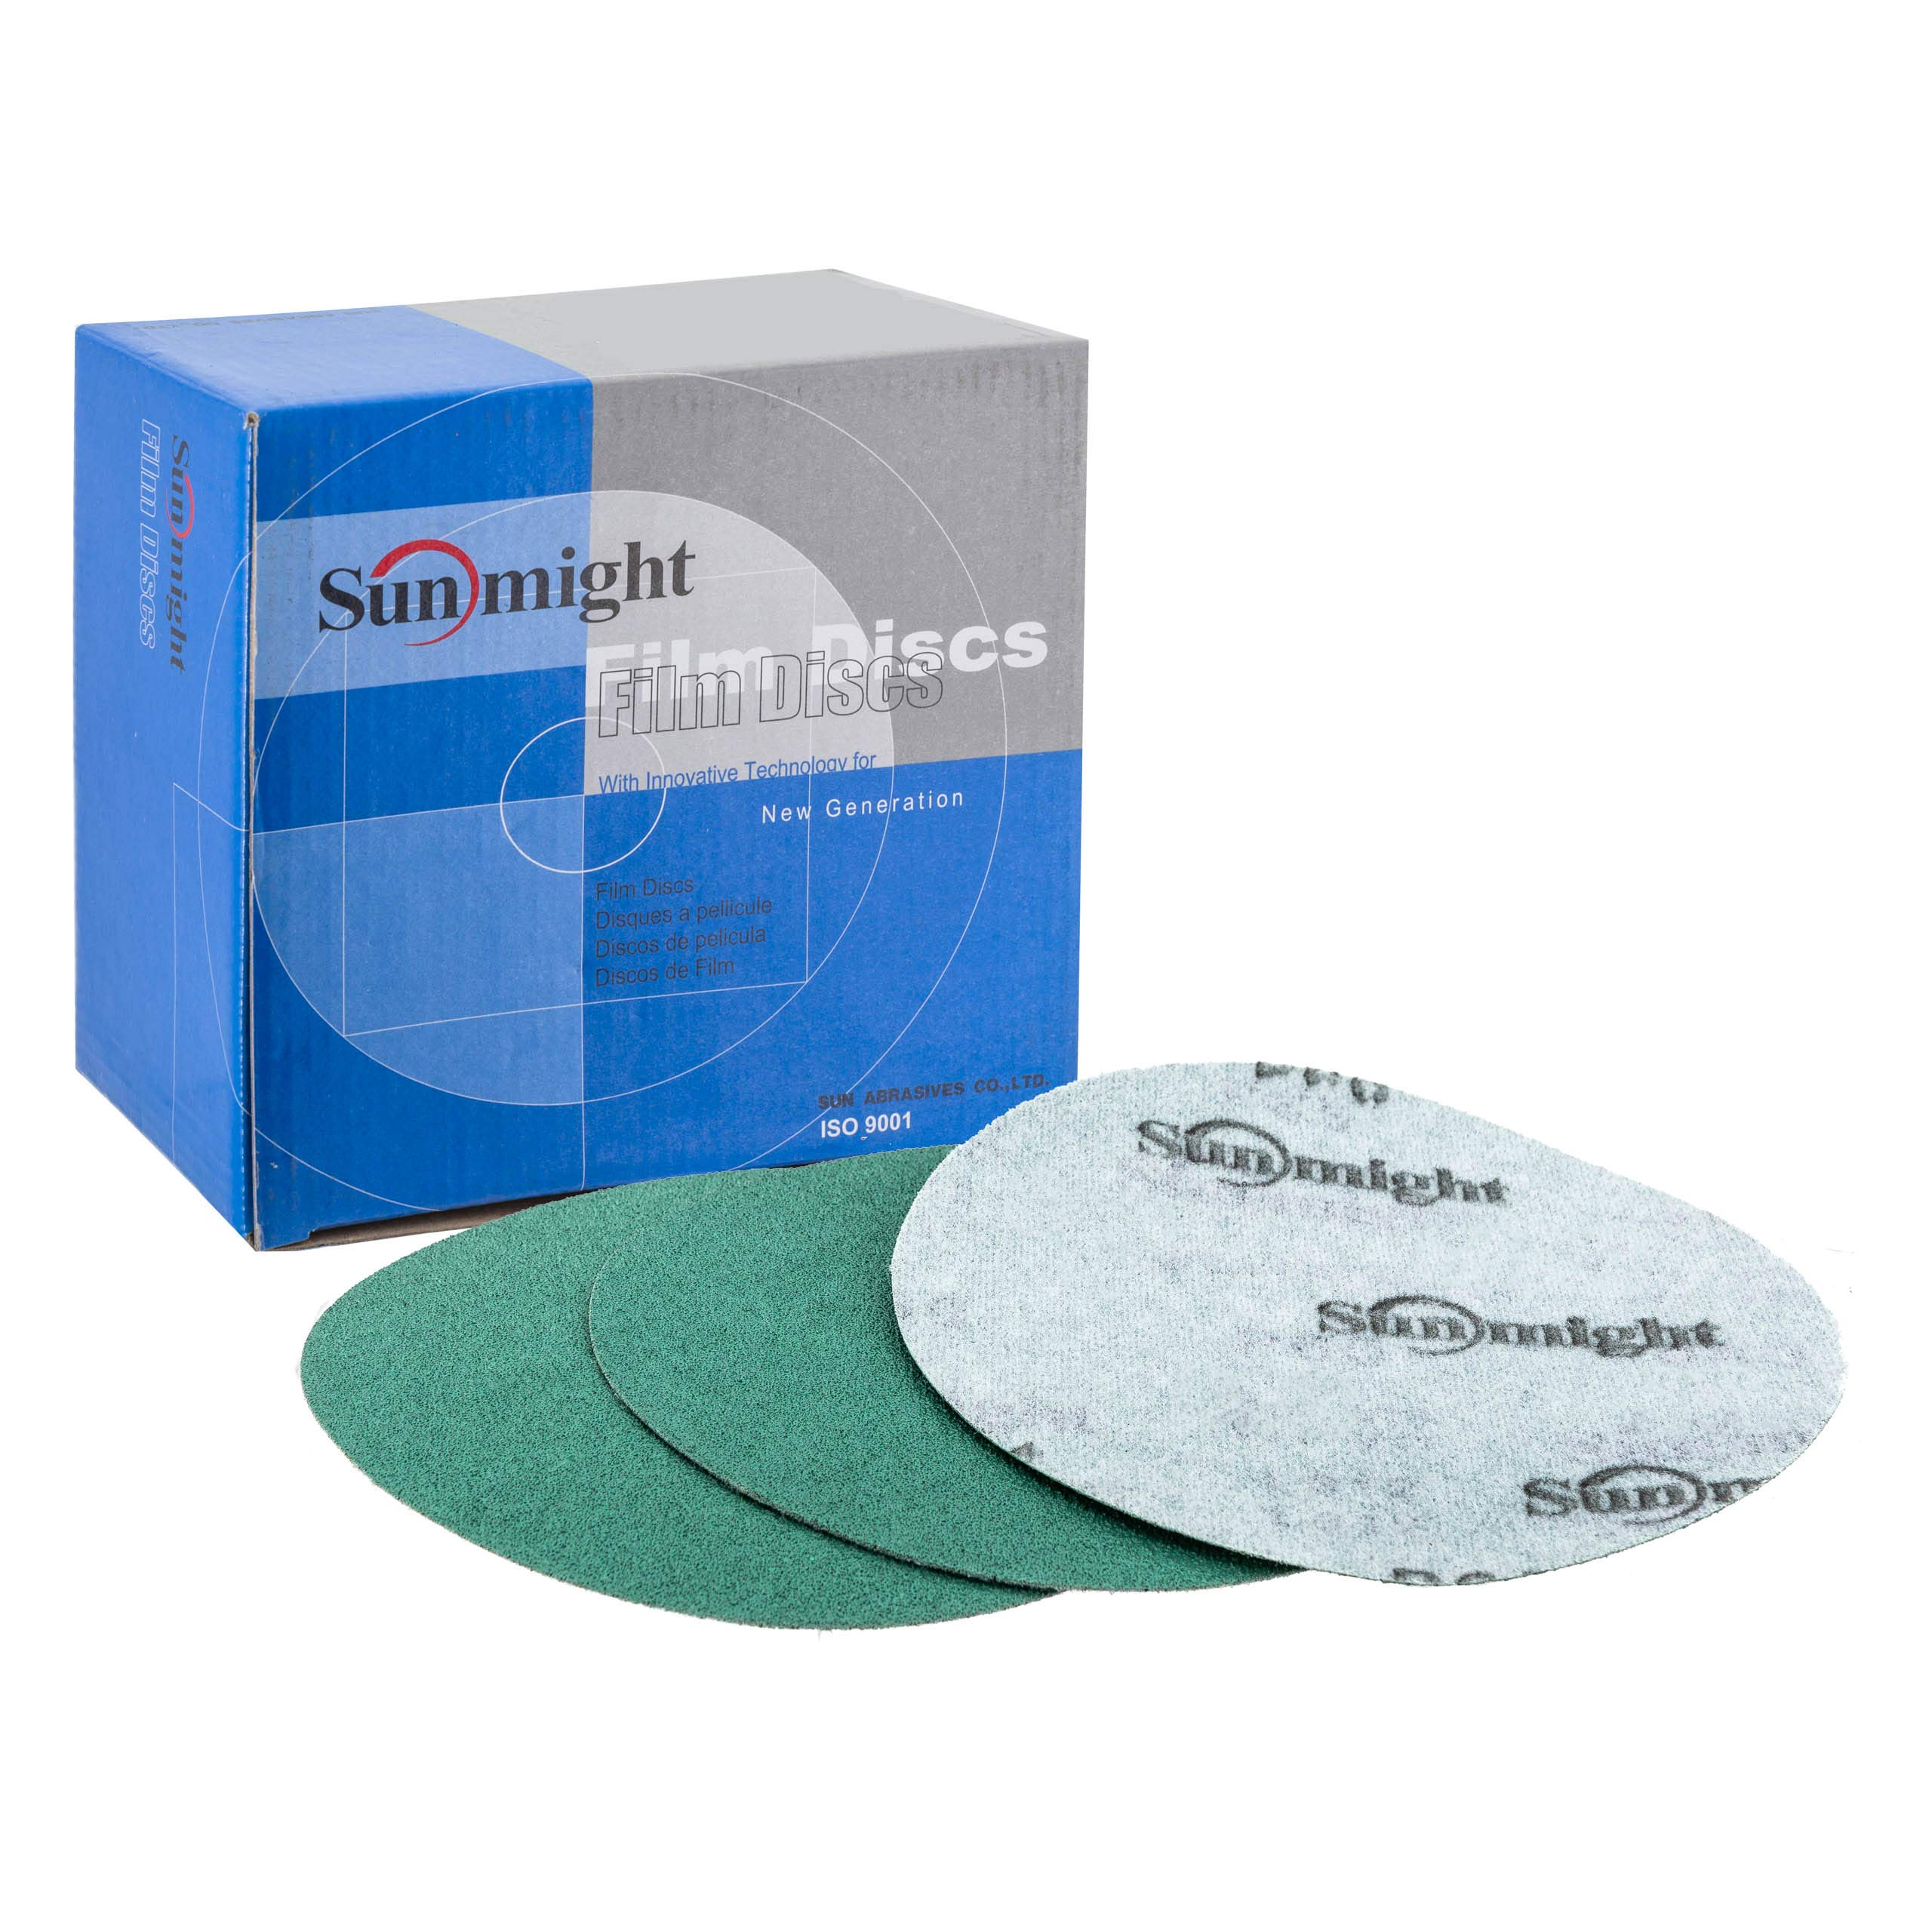 Sunmight 01407 1 Pack 6'' No Hole Velcro Disc (Film Grit 100)